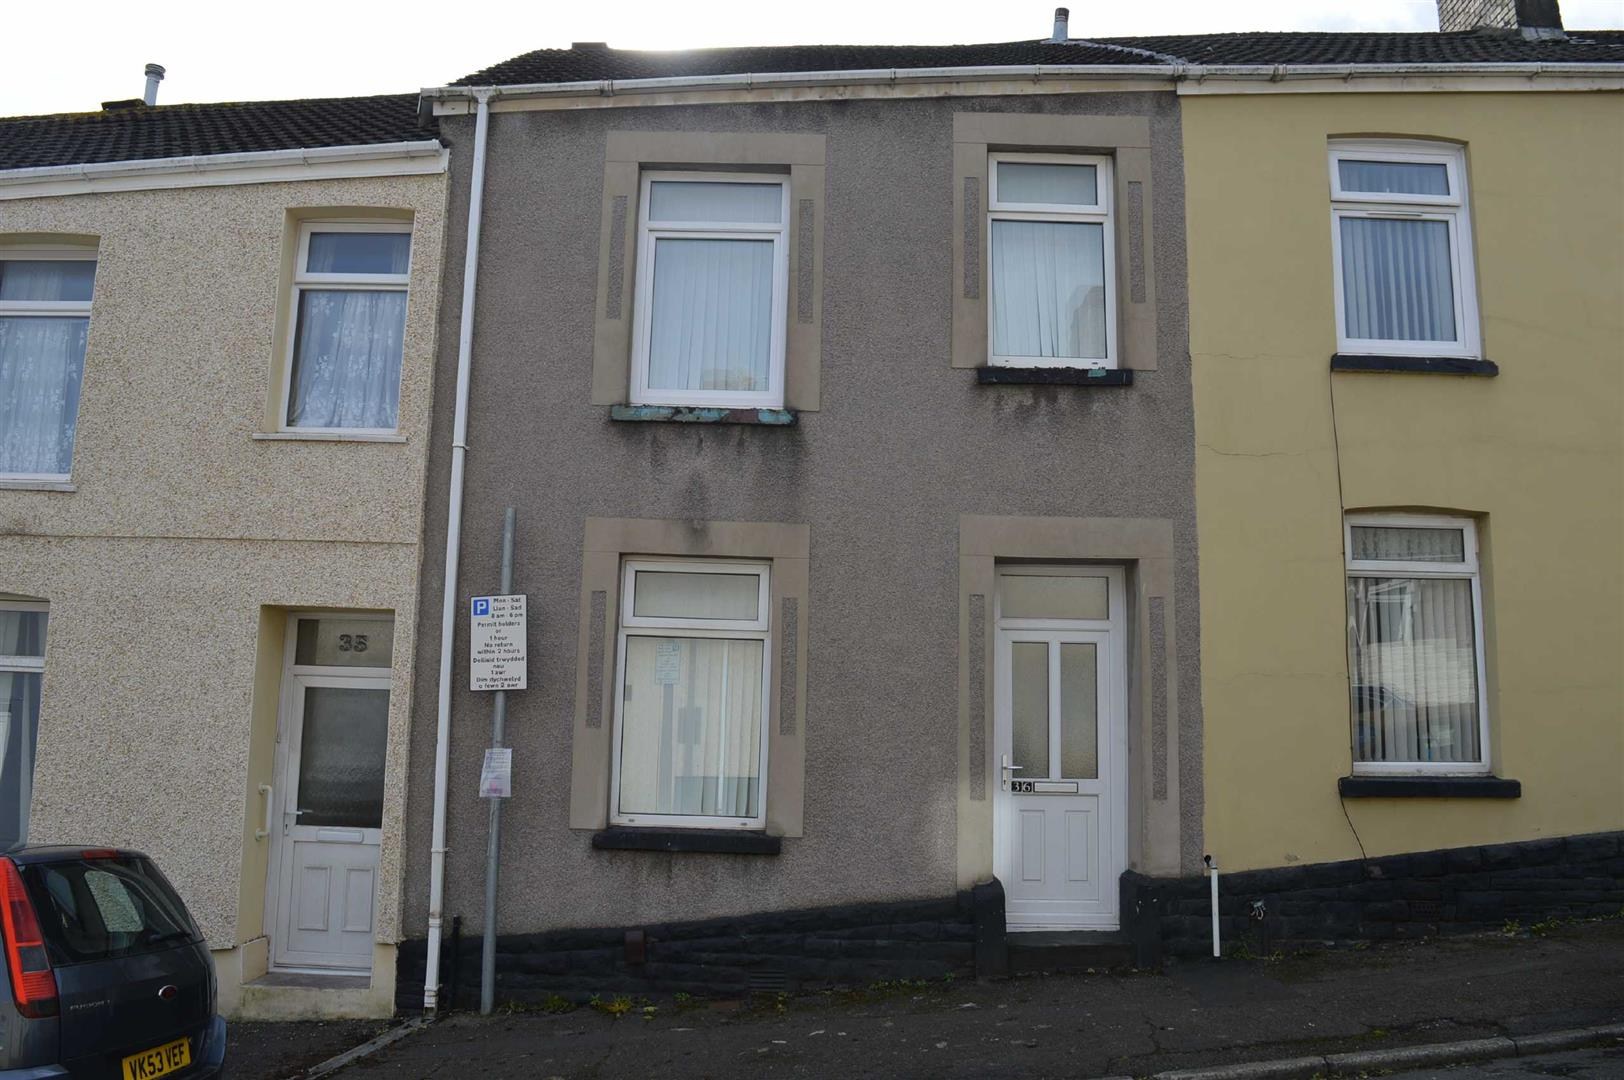 Crymlyn Street, Port Tennant, Swansea, SA1 8NX